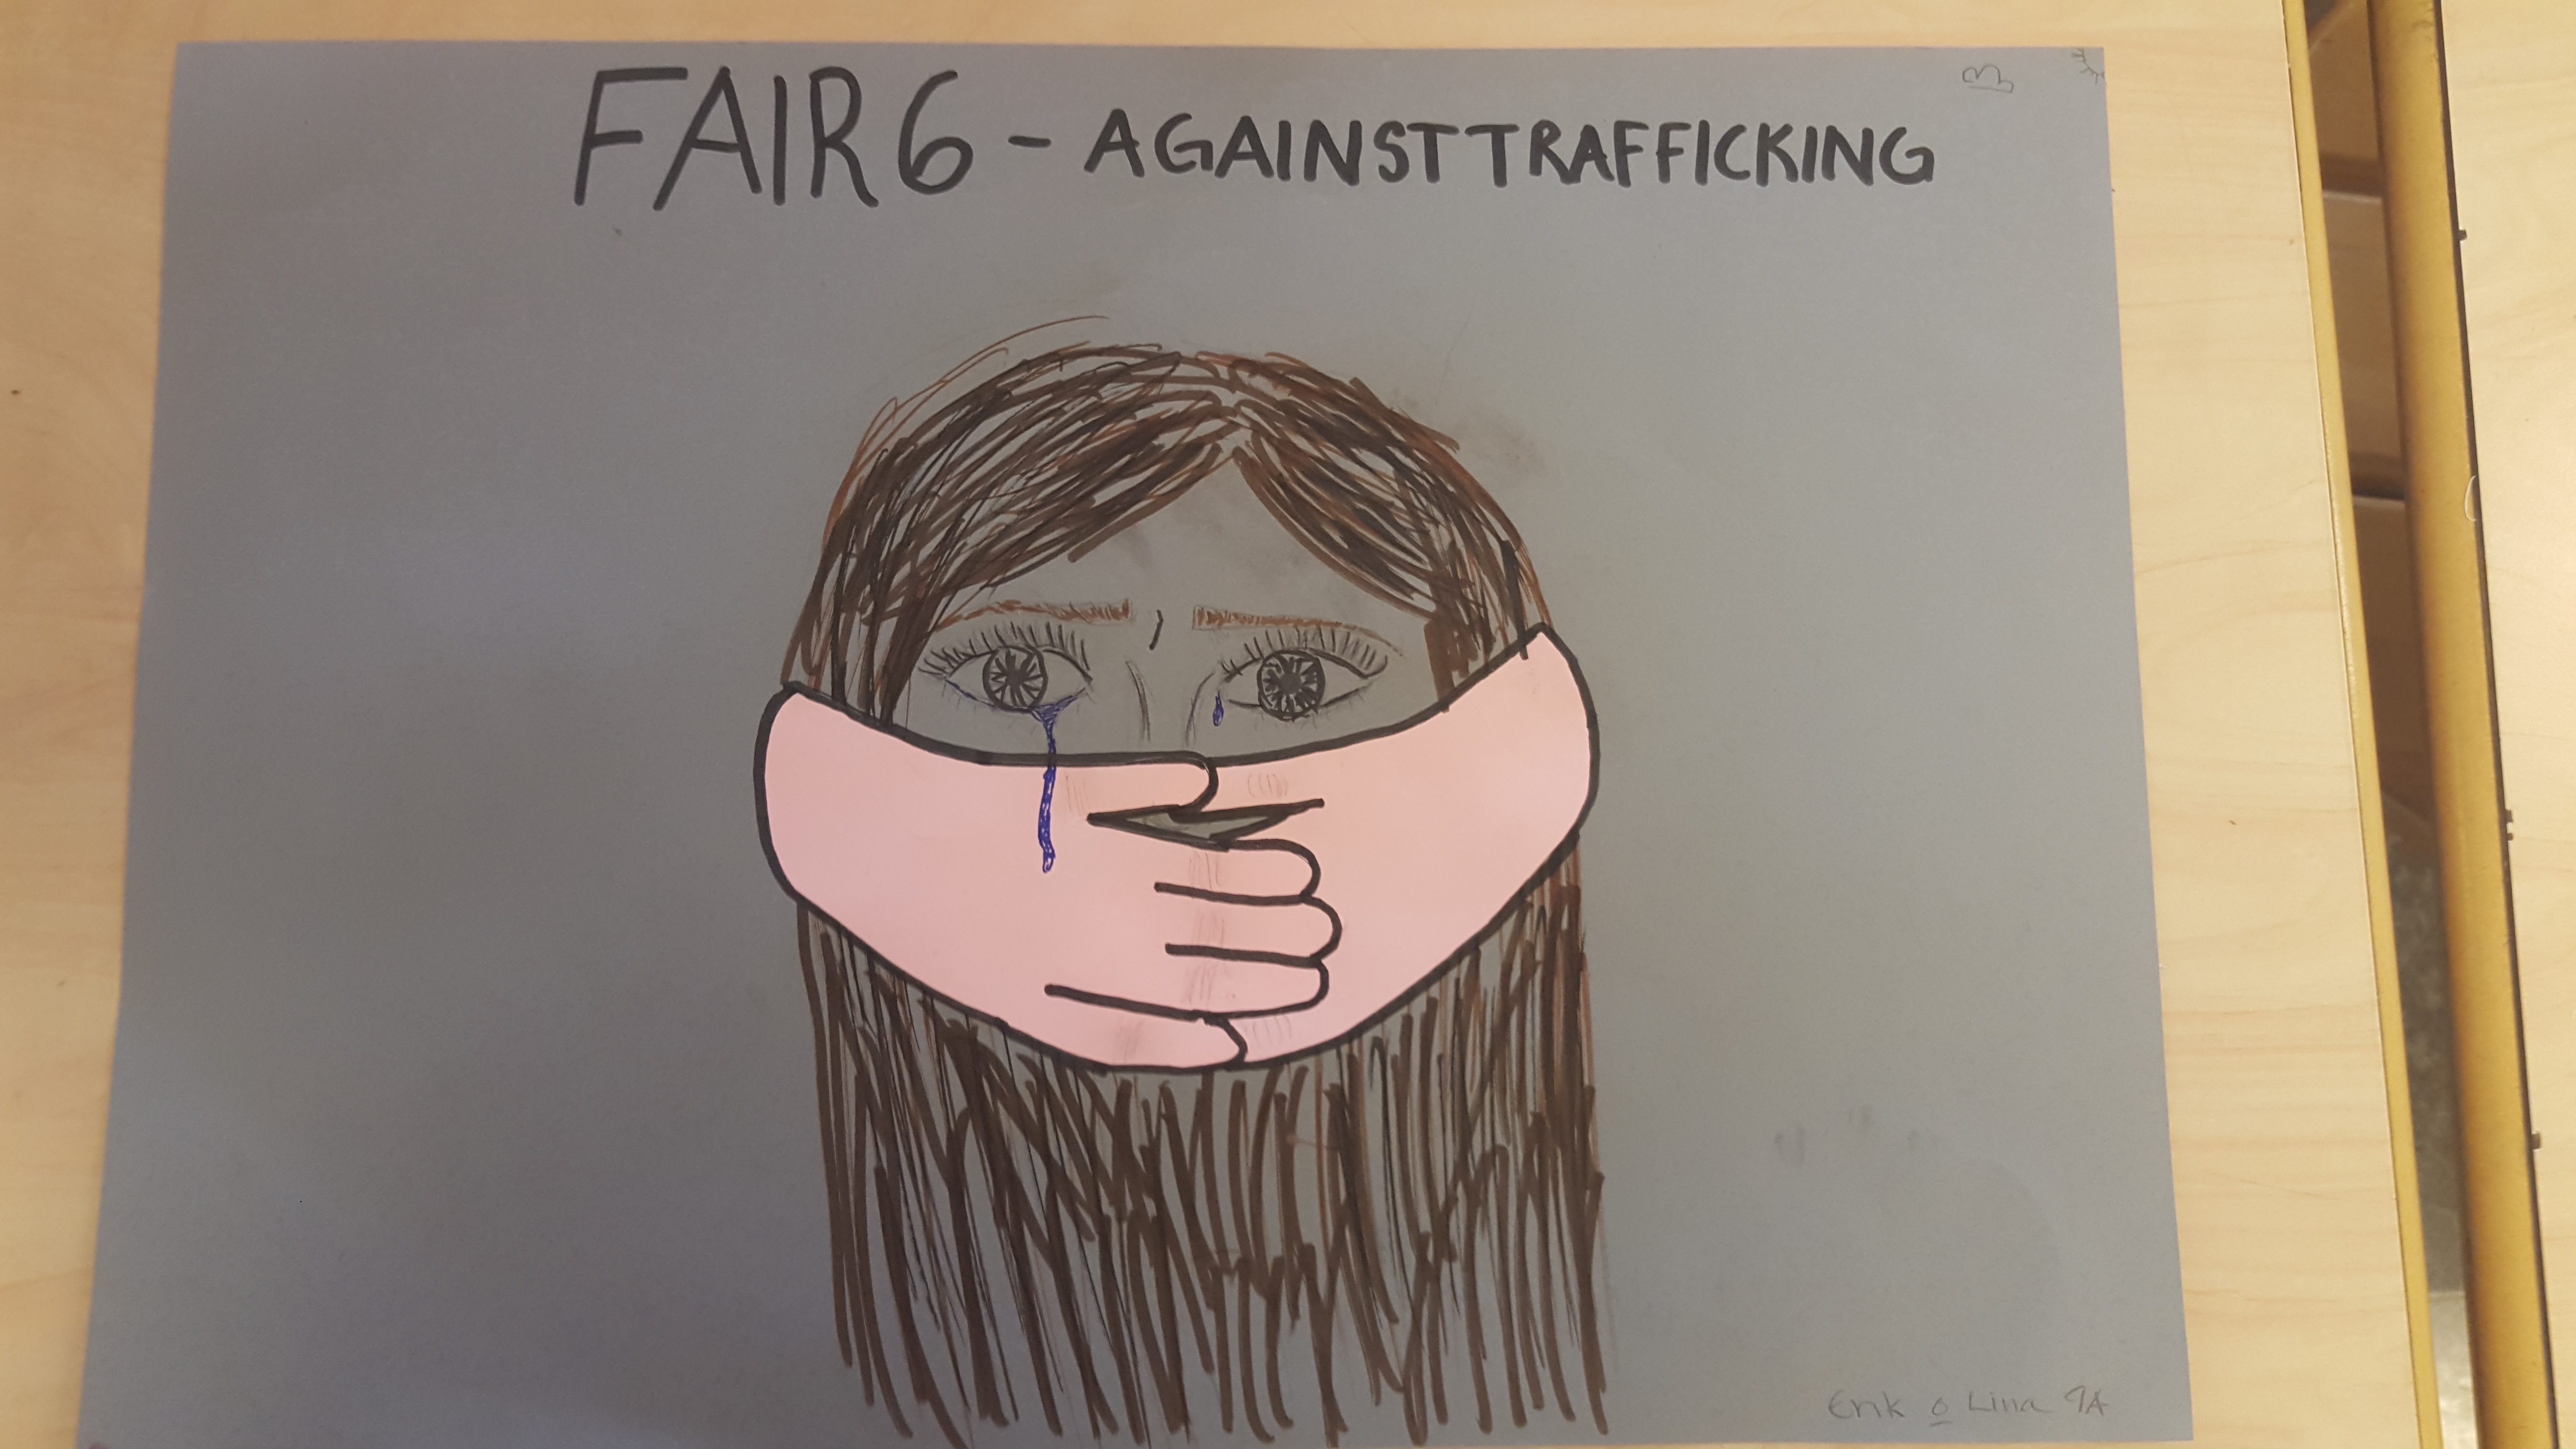 Fair 6 - against trafficking